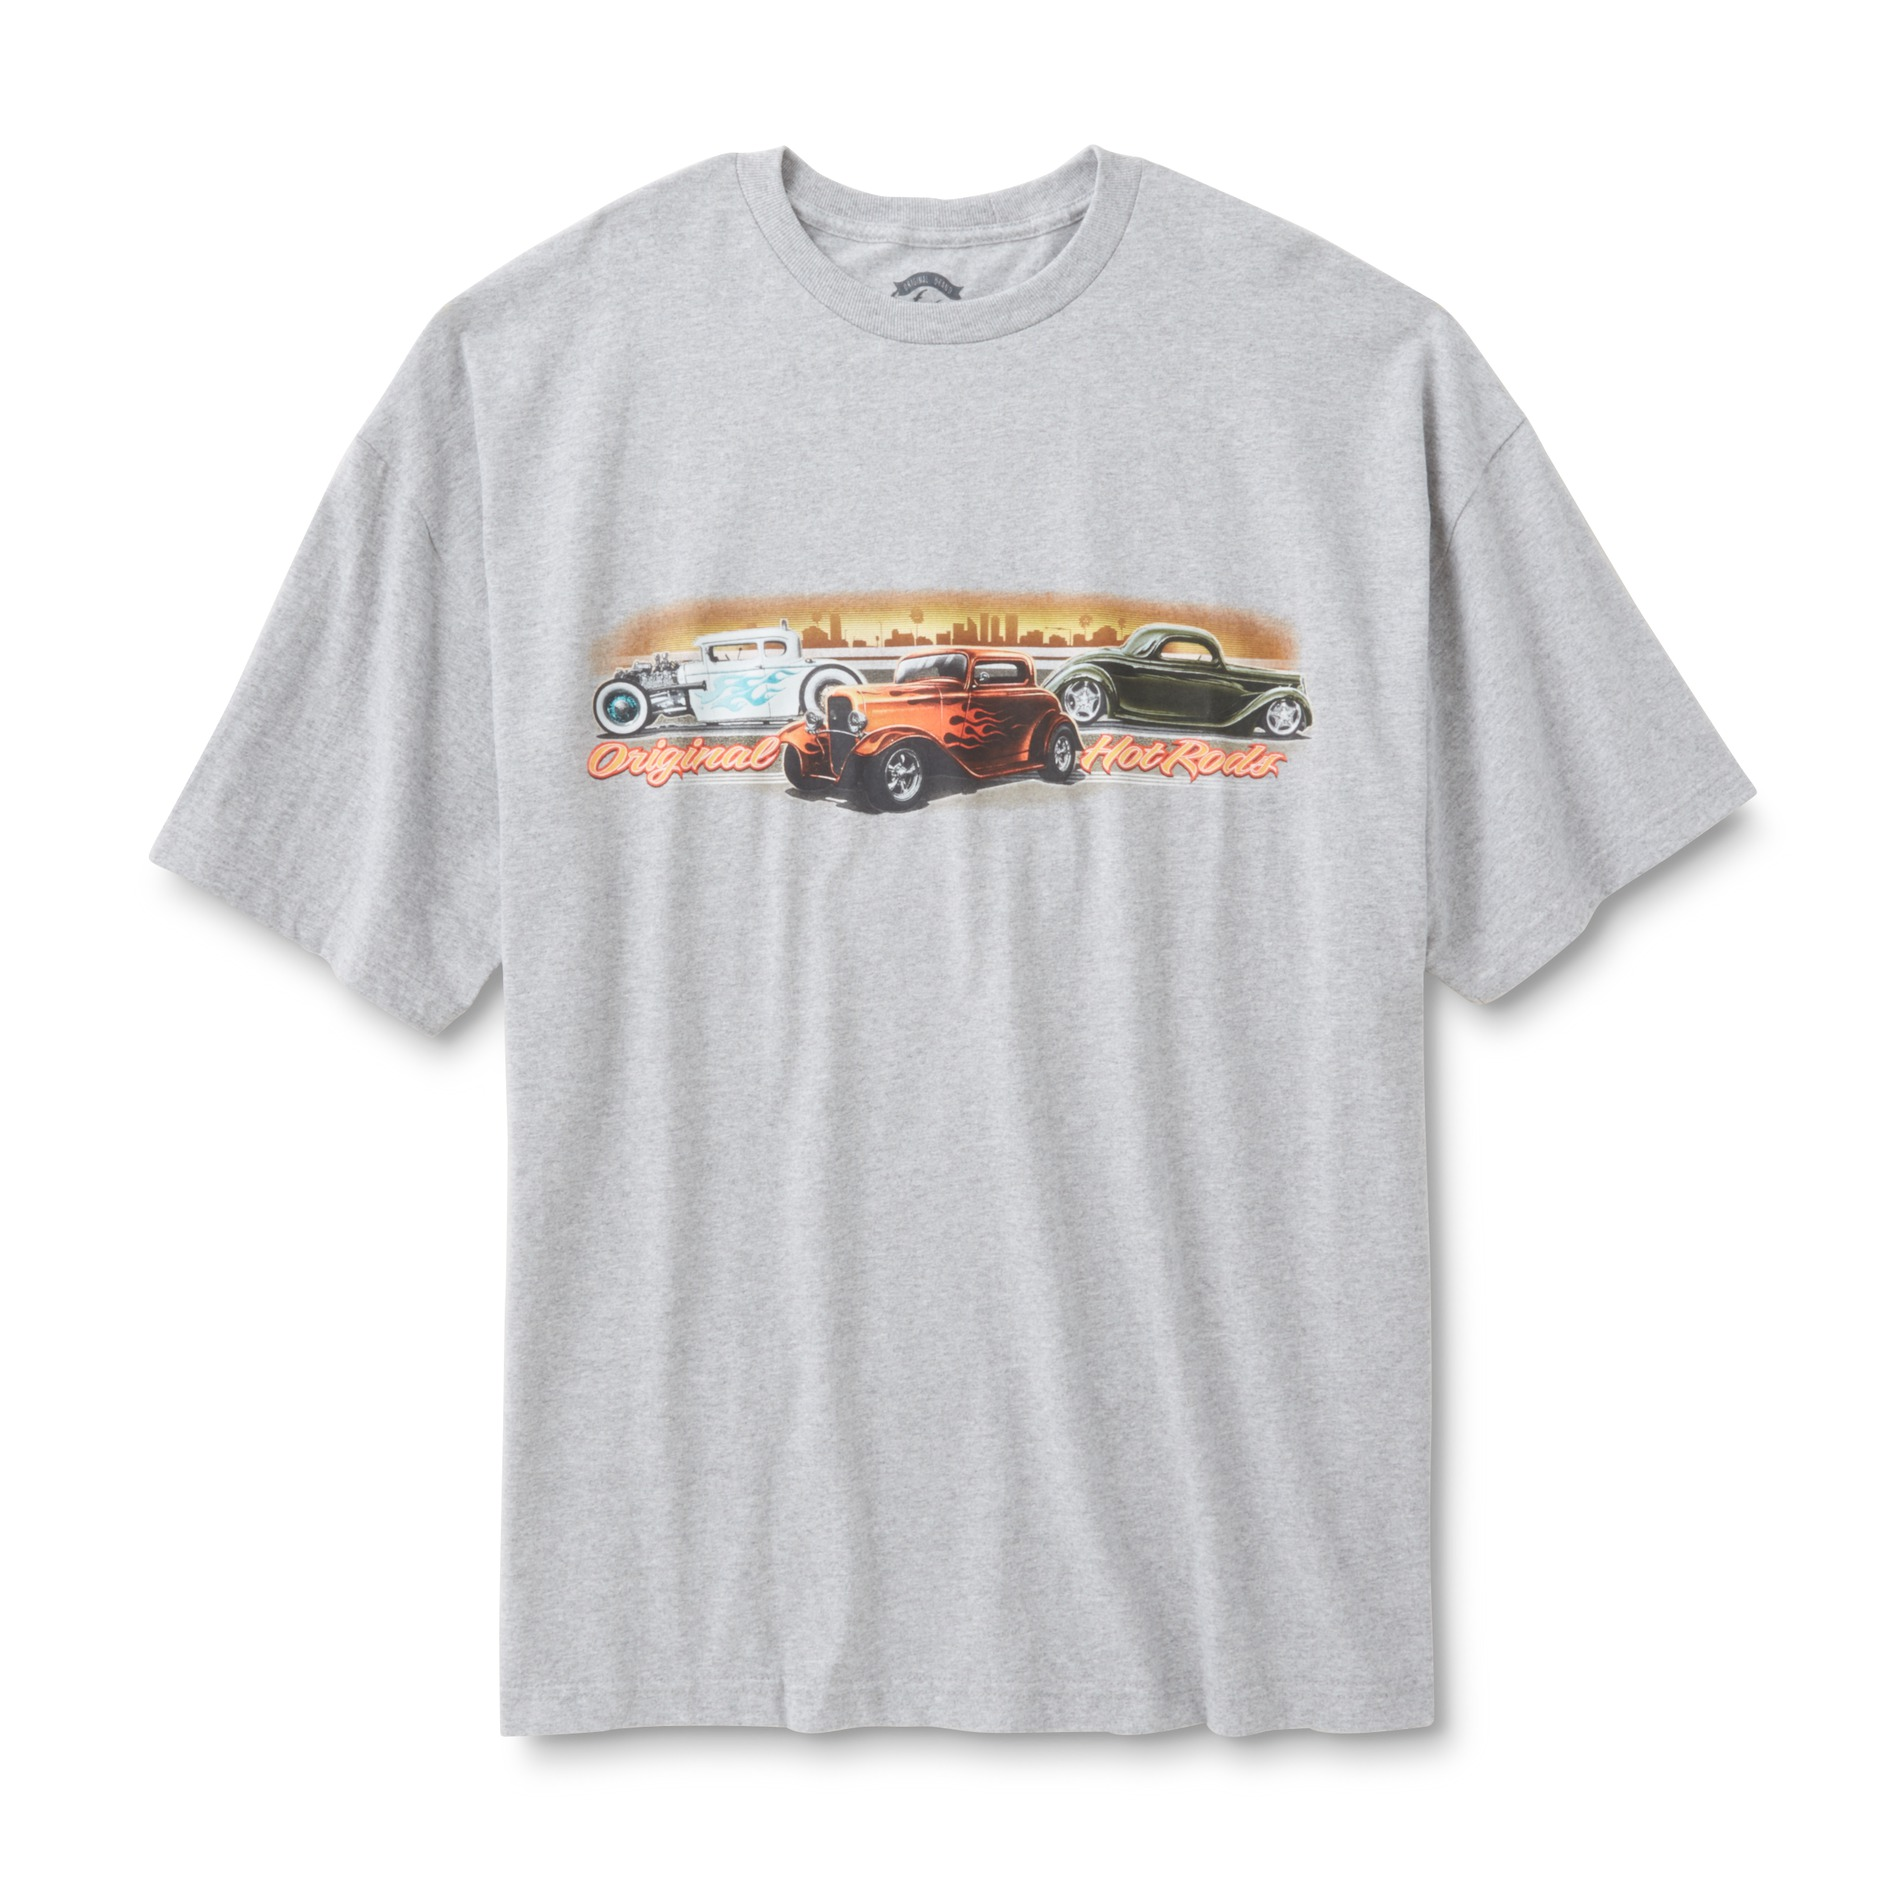 Men's Big & Tall Graphic T-Shirt-Hot Rods PartNumber: 041VA99064012P MfgPartNumber: XOBZT213-062-3XLT